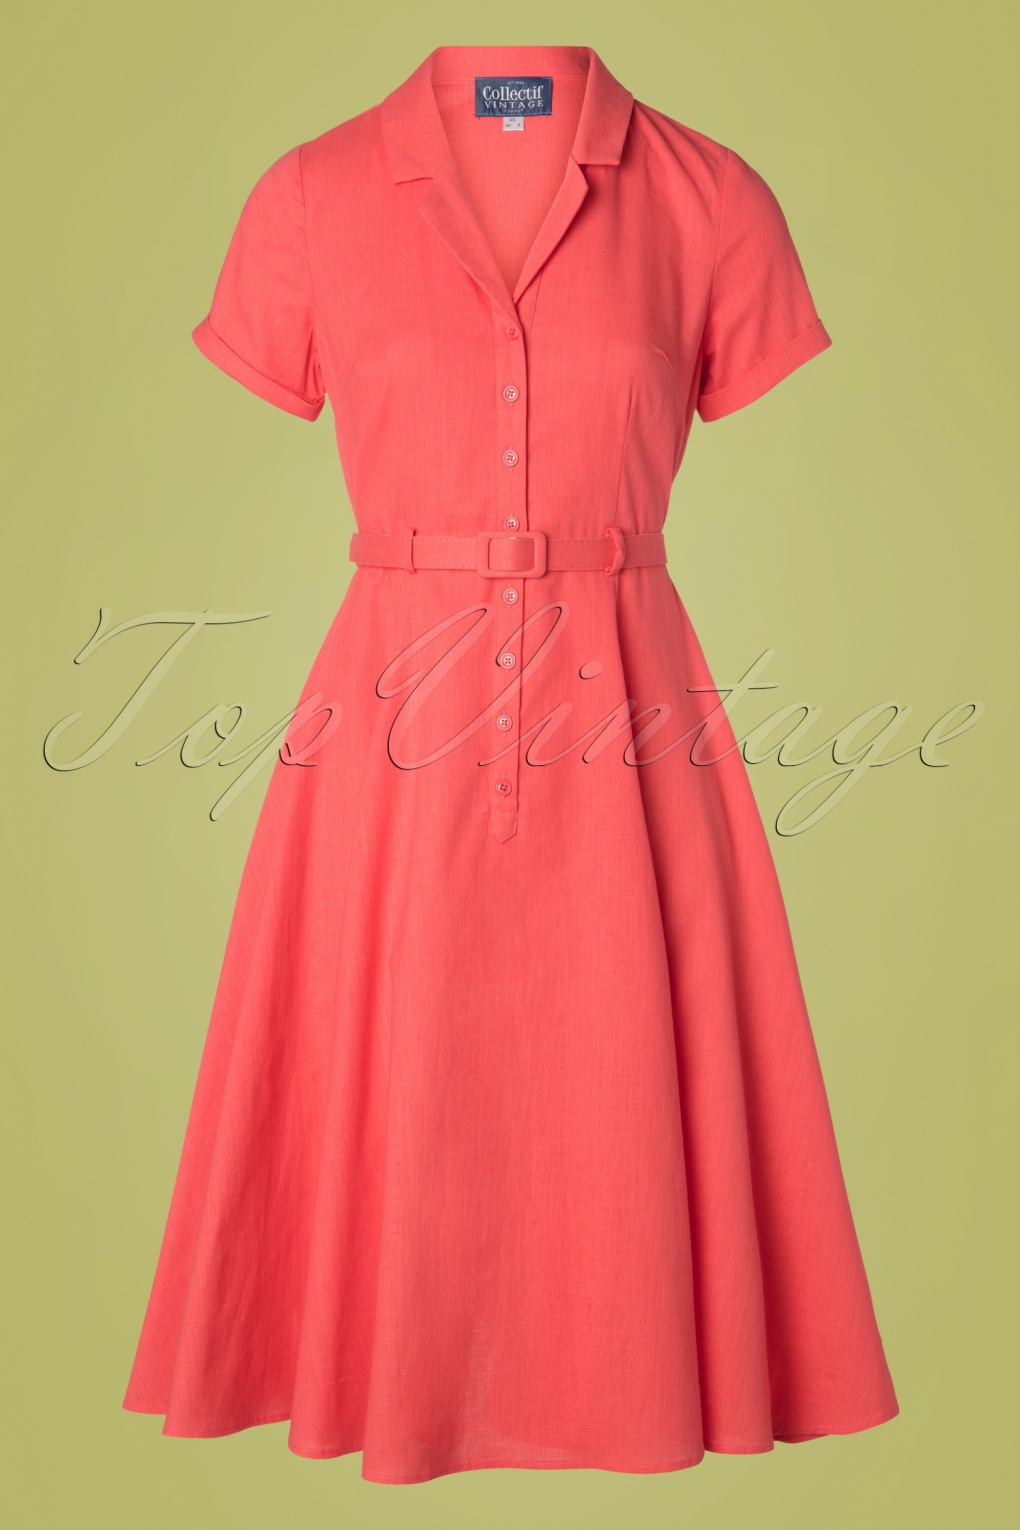 1950s Fashion History: Women's Clothing 50s Caterina Swing Dress in Coral Pink £72.01 AT vintagedancer.com